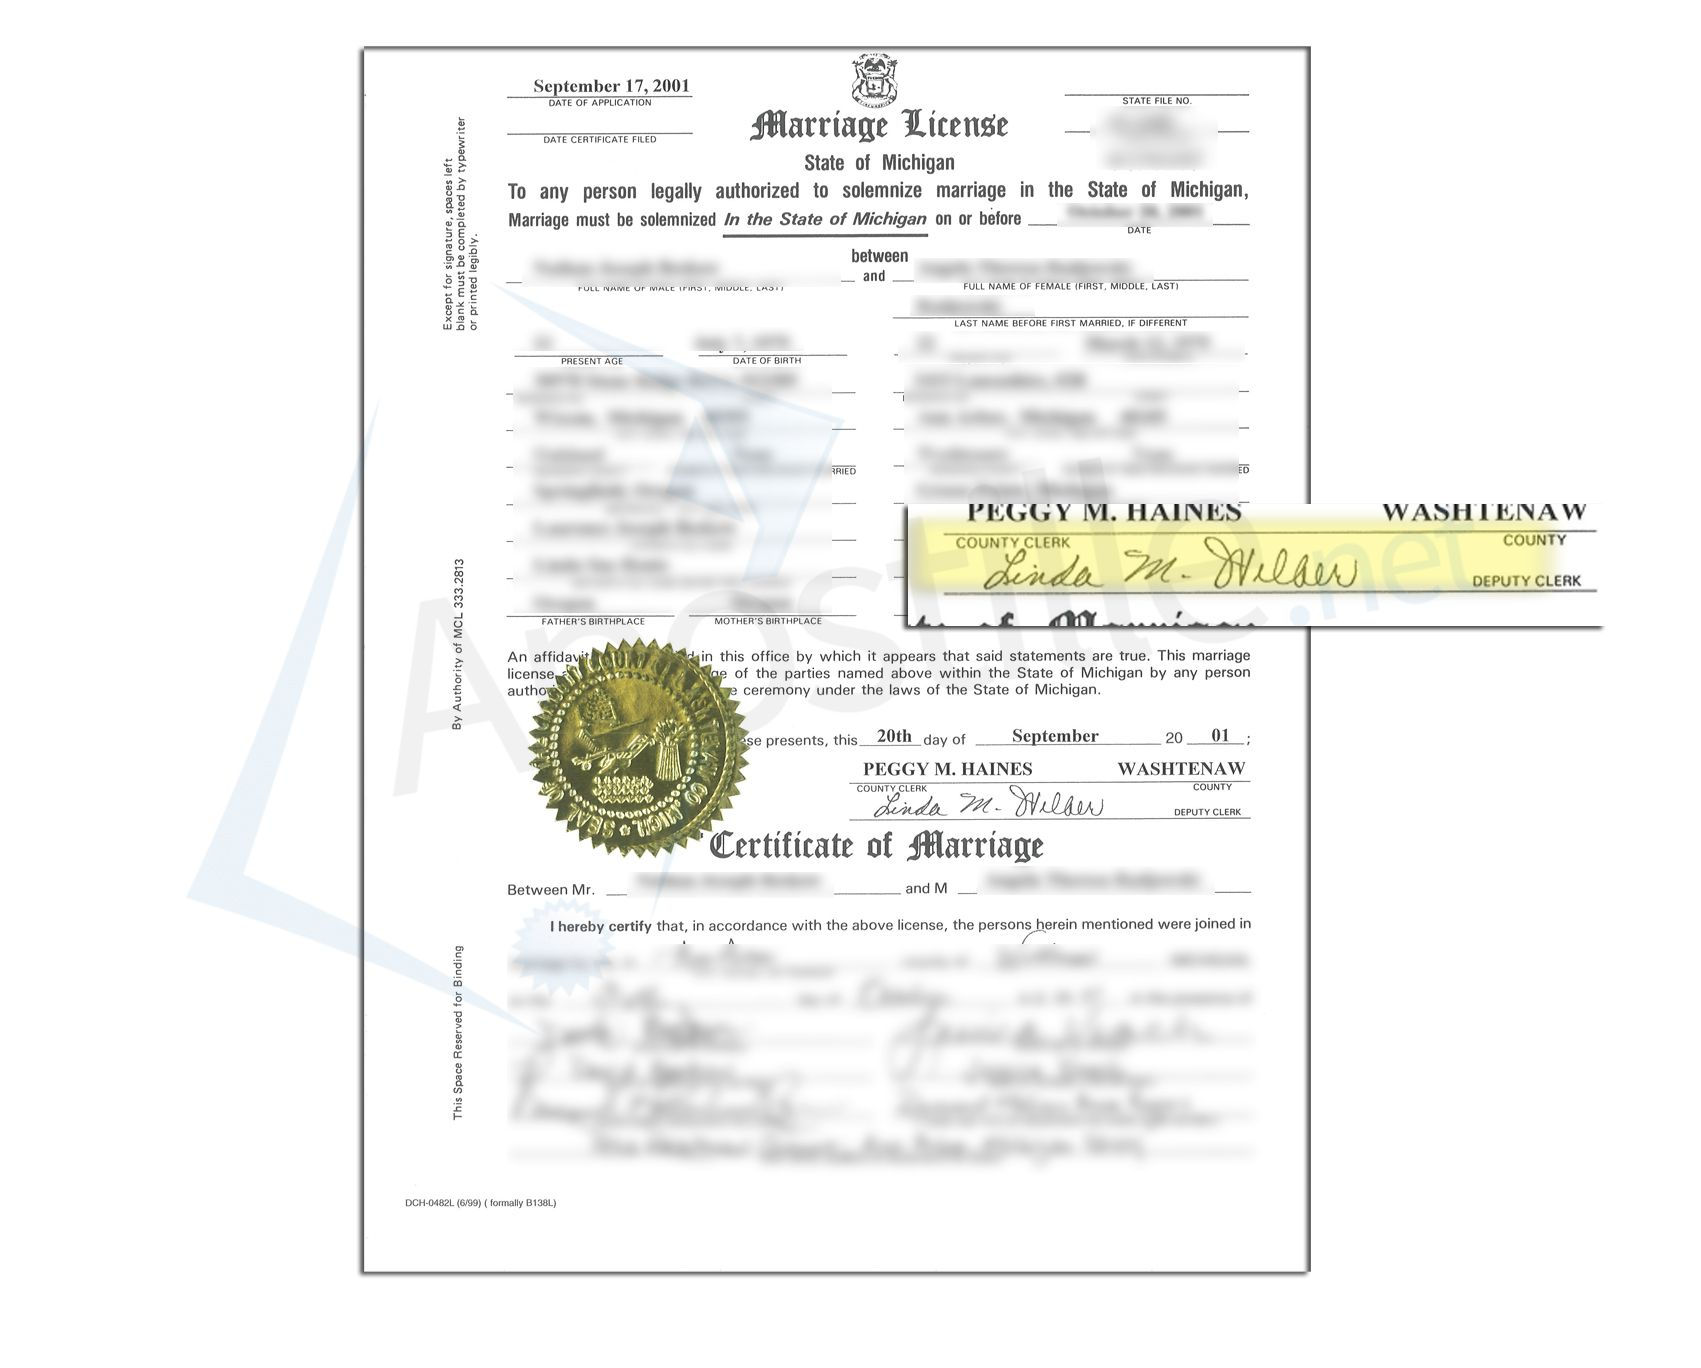 County Of Washtenaw State Of Michigan Marriage License Signed By A